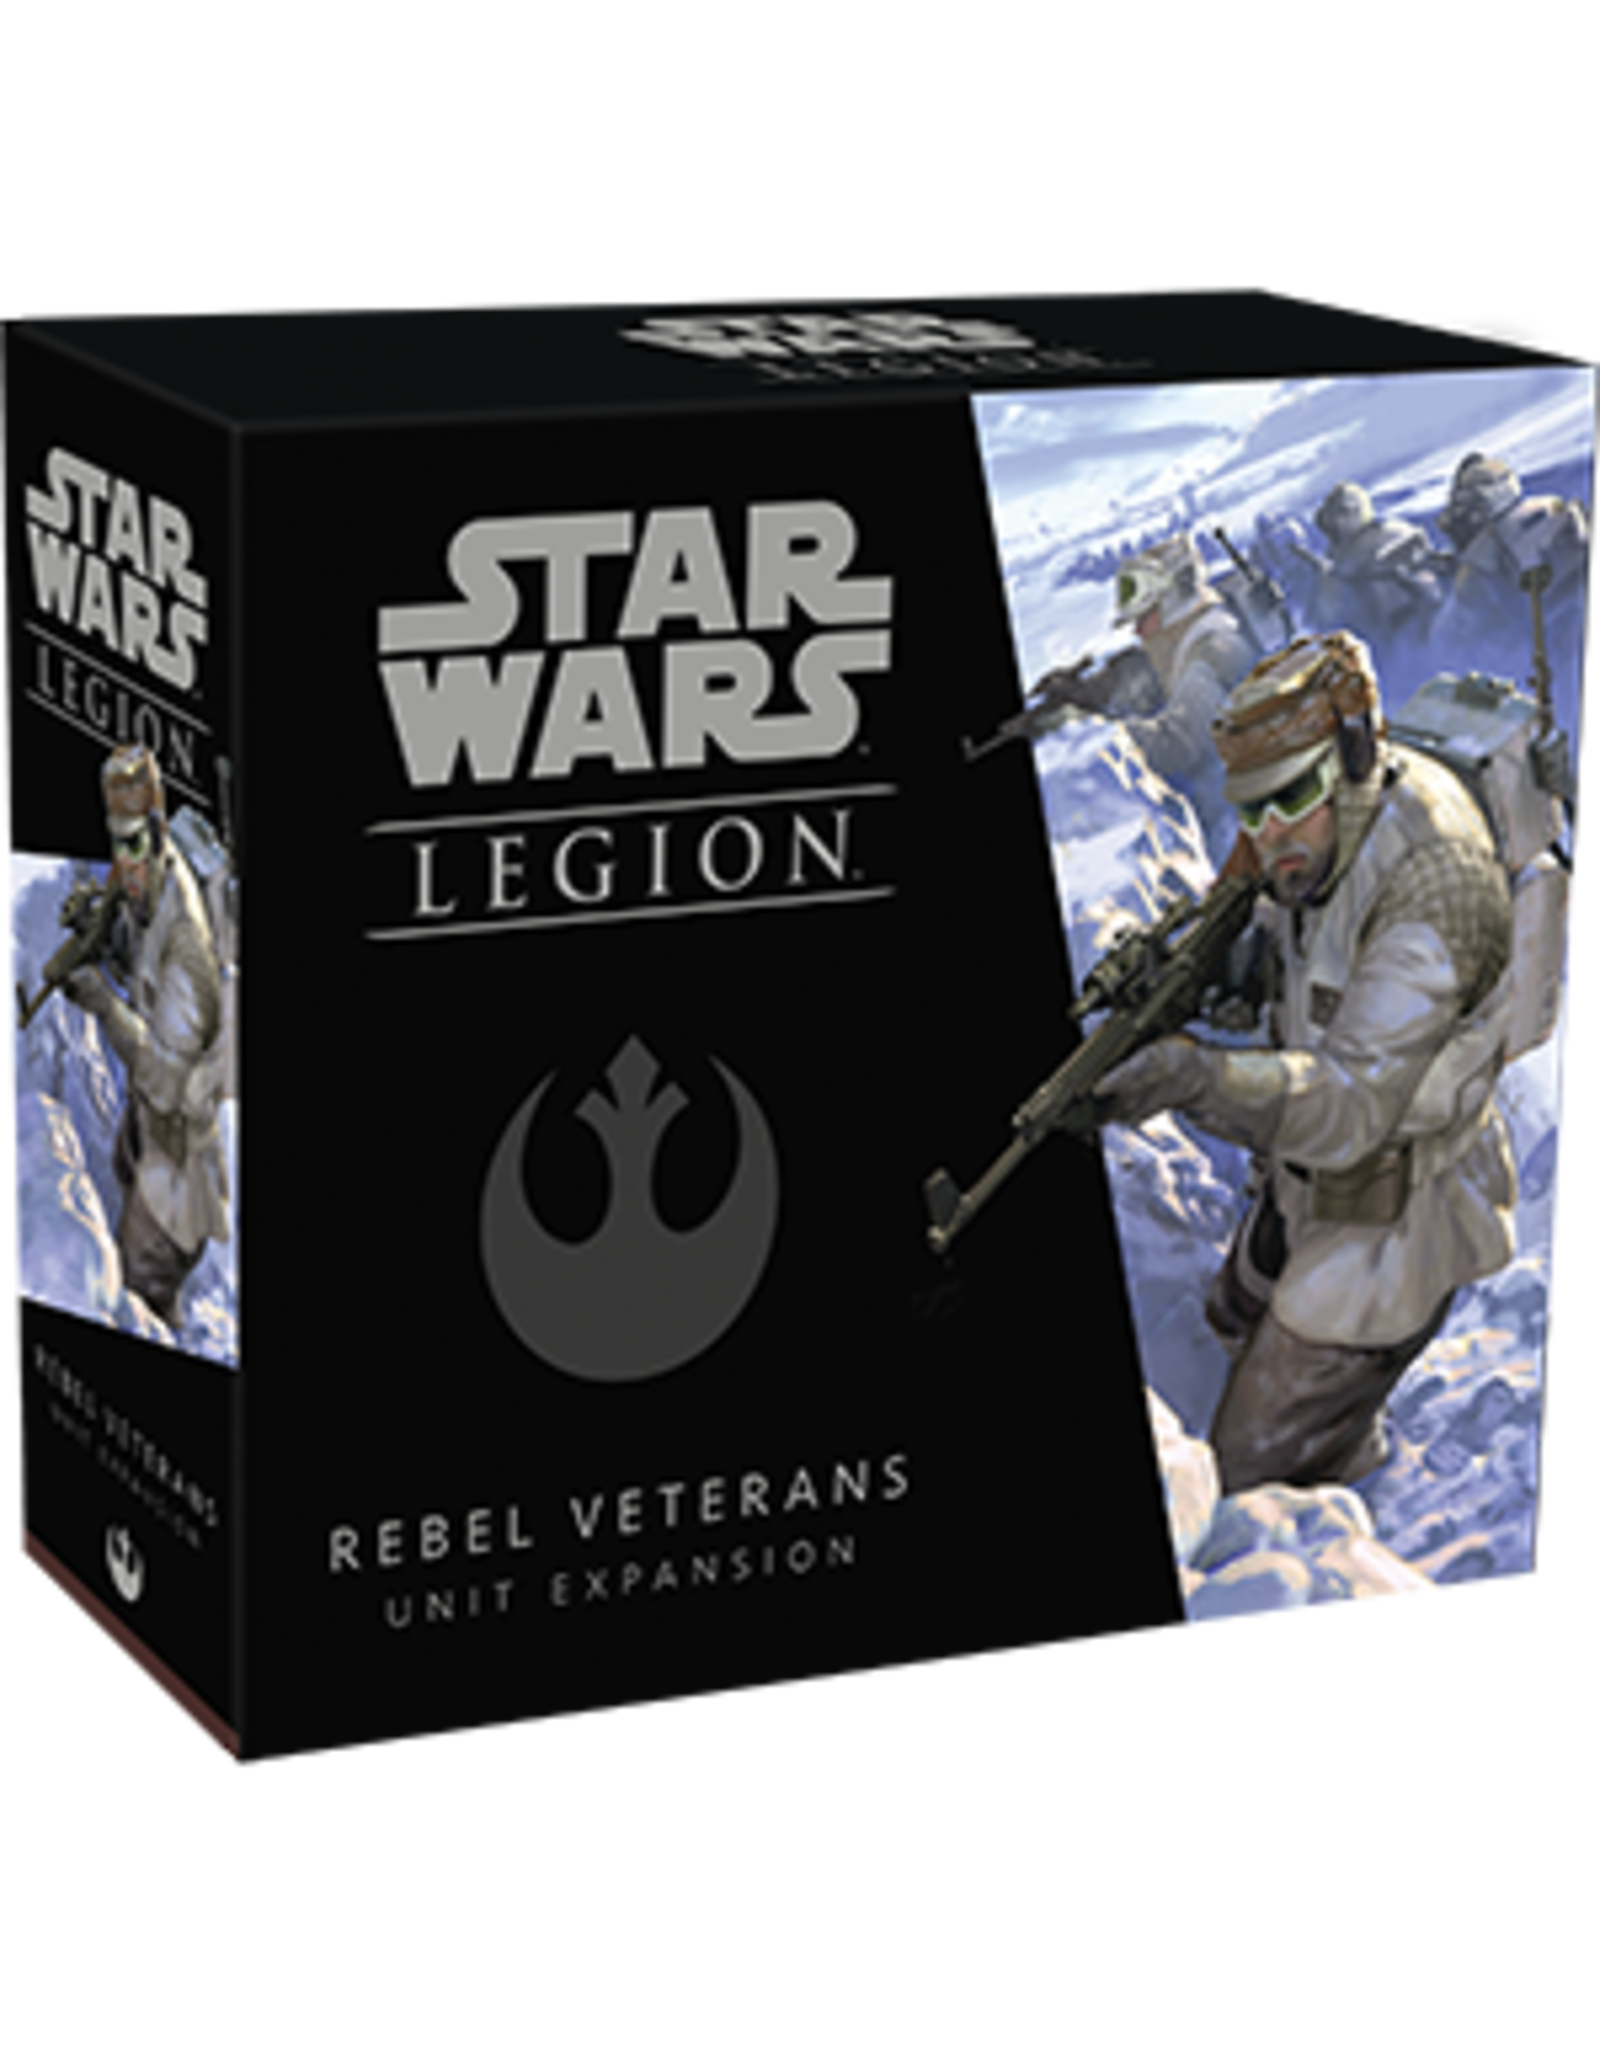 Star Wars: Legion - Rebel Veterans Expansion